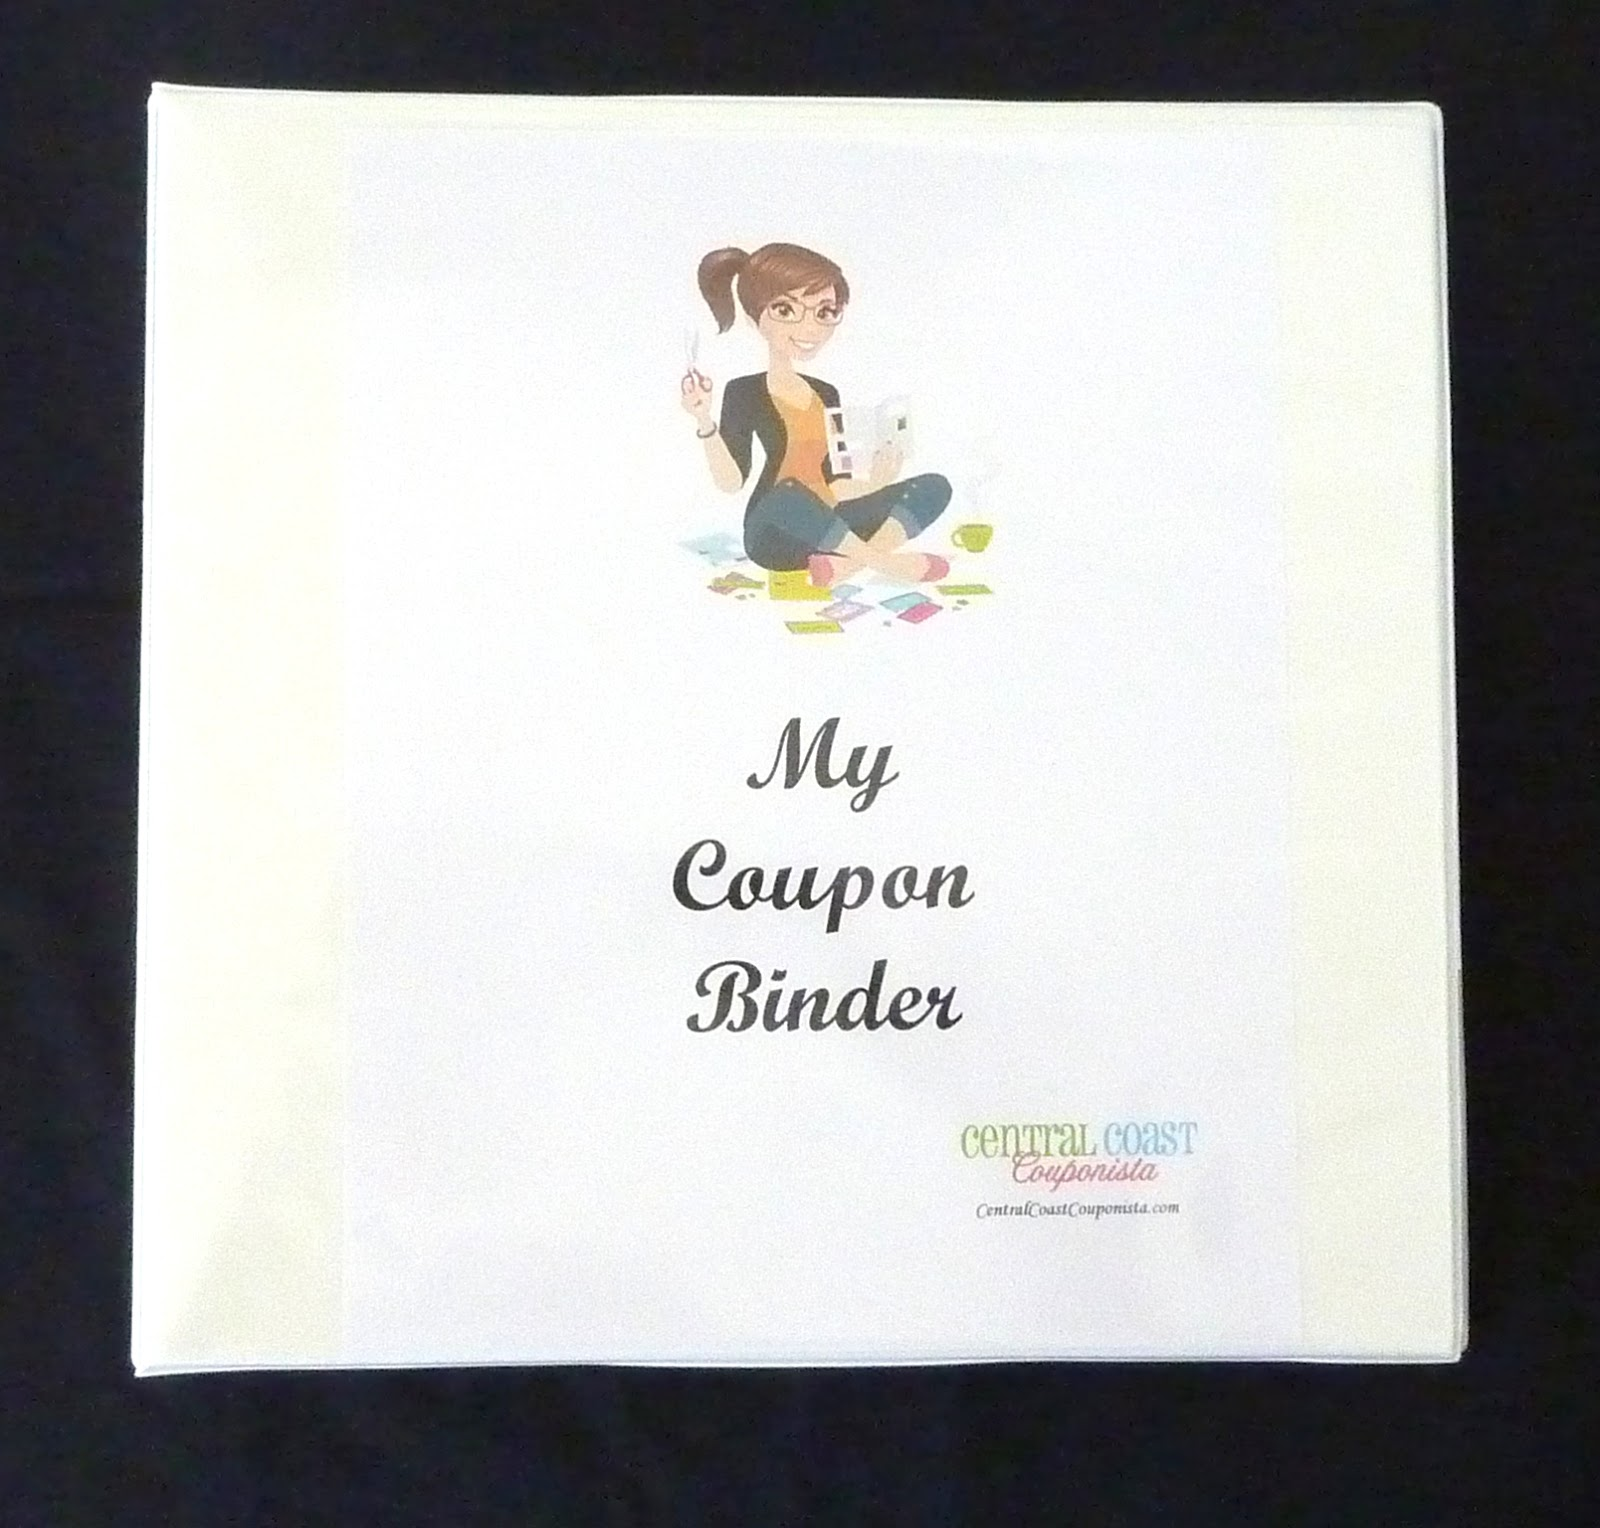 image regarding William Sonoma Coupons Printable named Coupon binder include / Coupon catholic relatives items